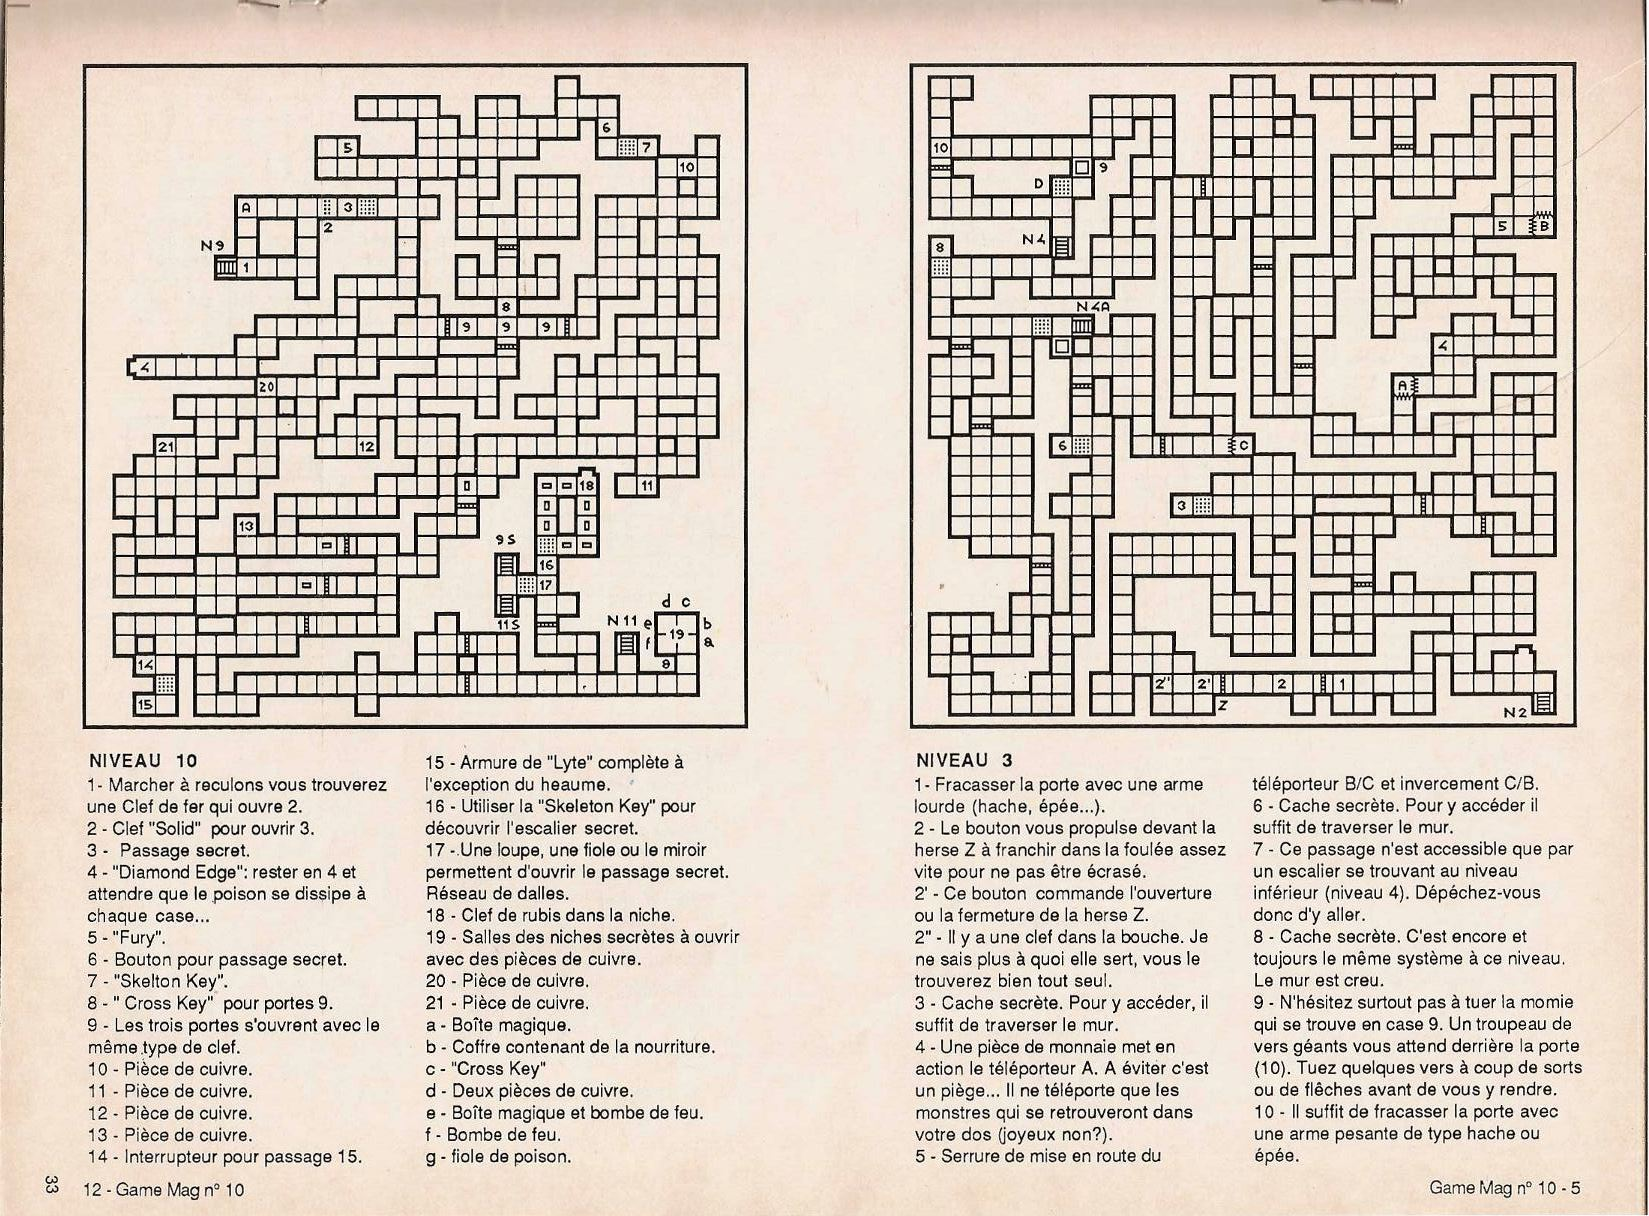 Dungeon Master Guide published in French magazine 'Game Mag', Issue #10 September 1988, Page 33